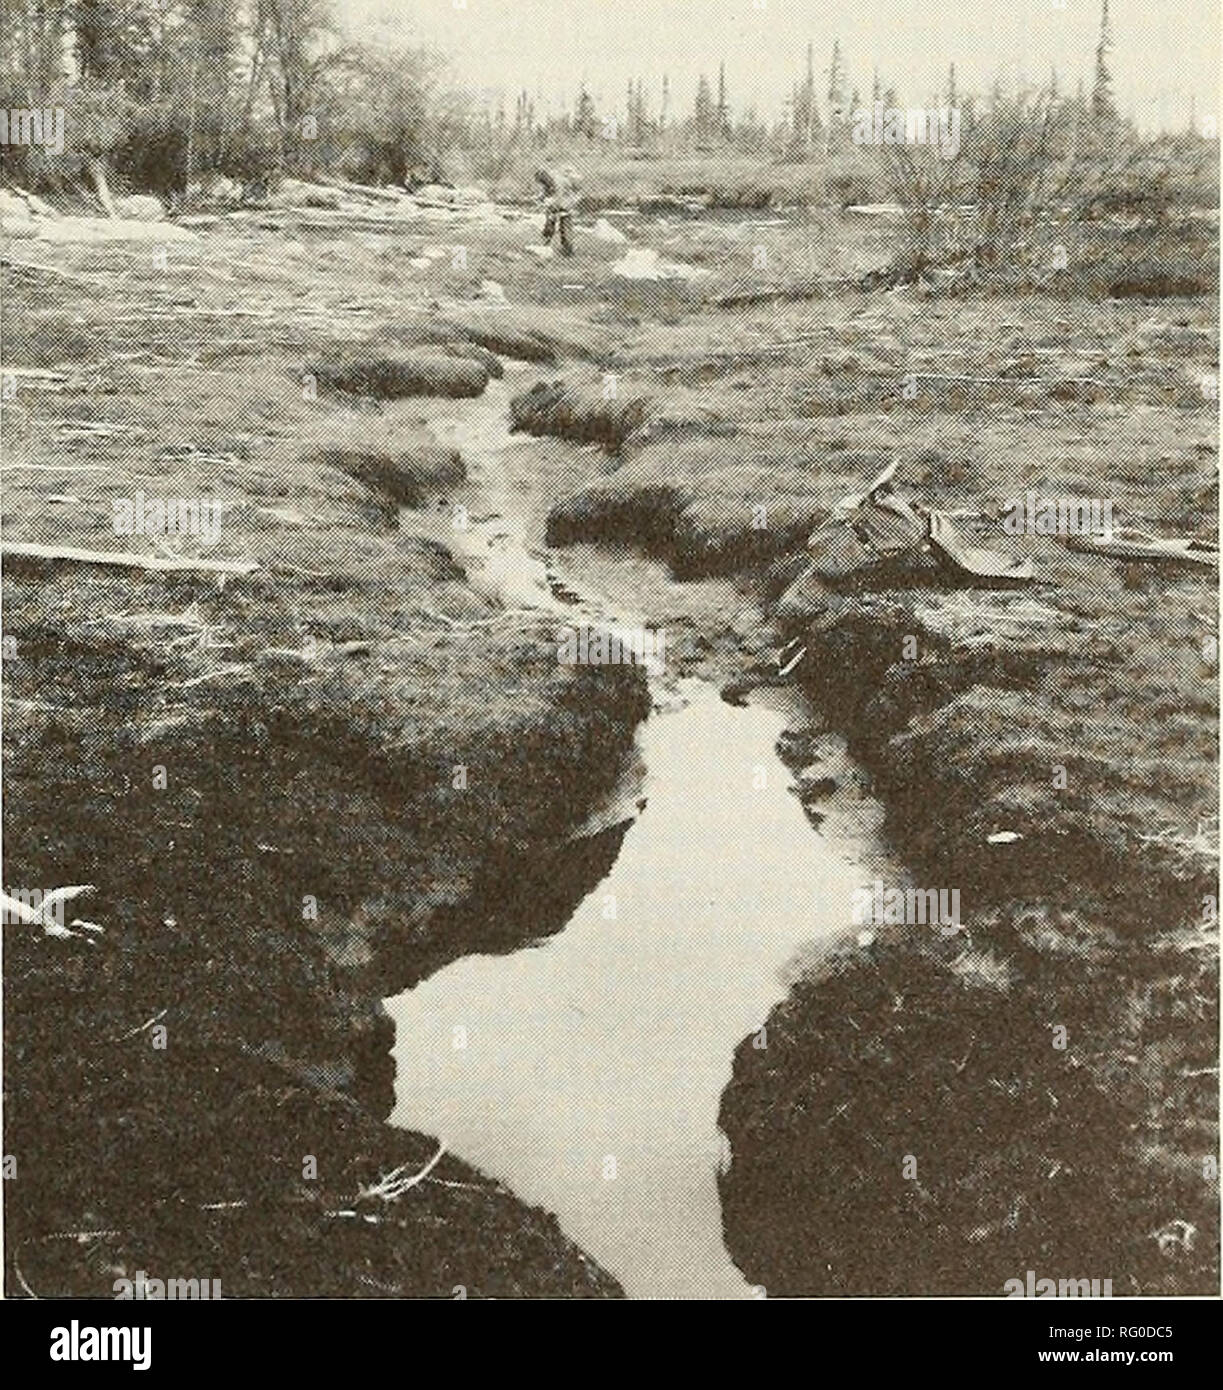 hight resolution of sketch diagram of karst and beaver canals at limestone reef within peatland complex attawapiskat river ontario channel between the sinks and the small